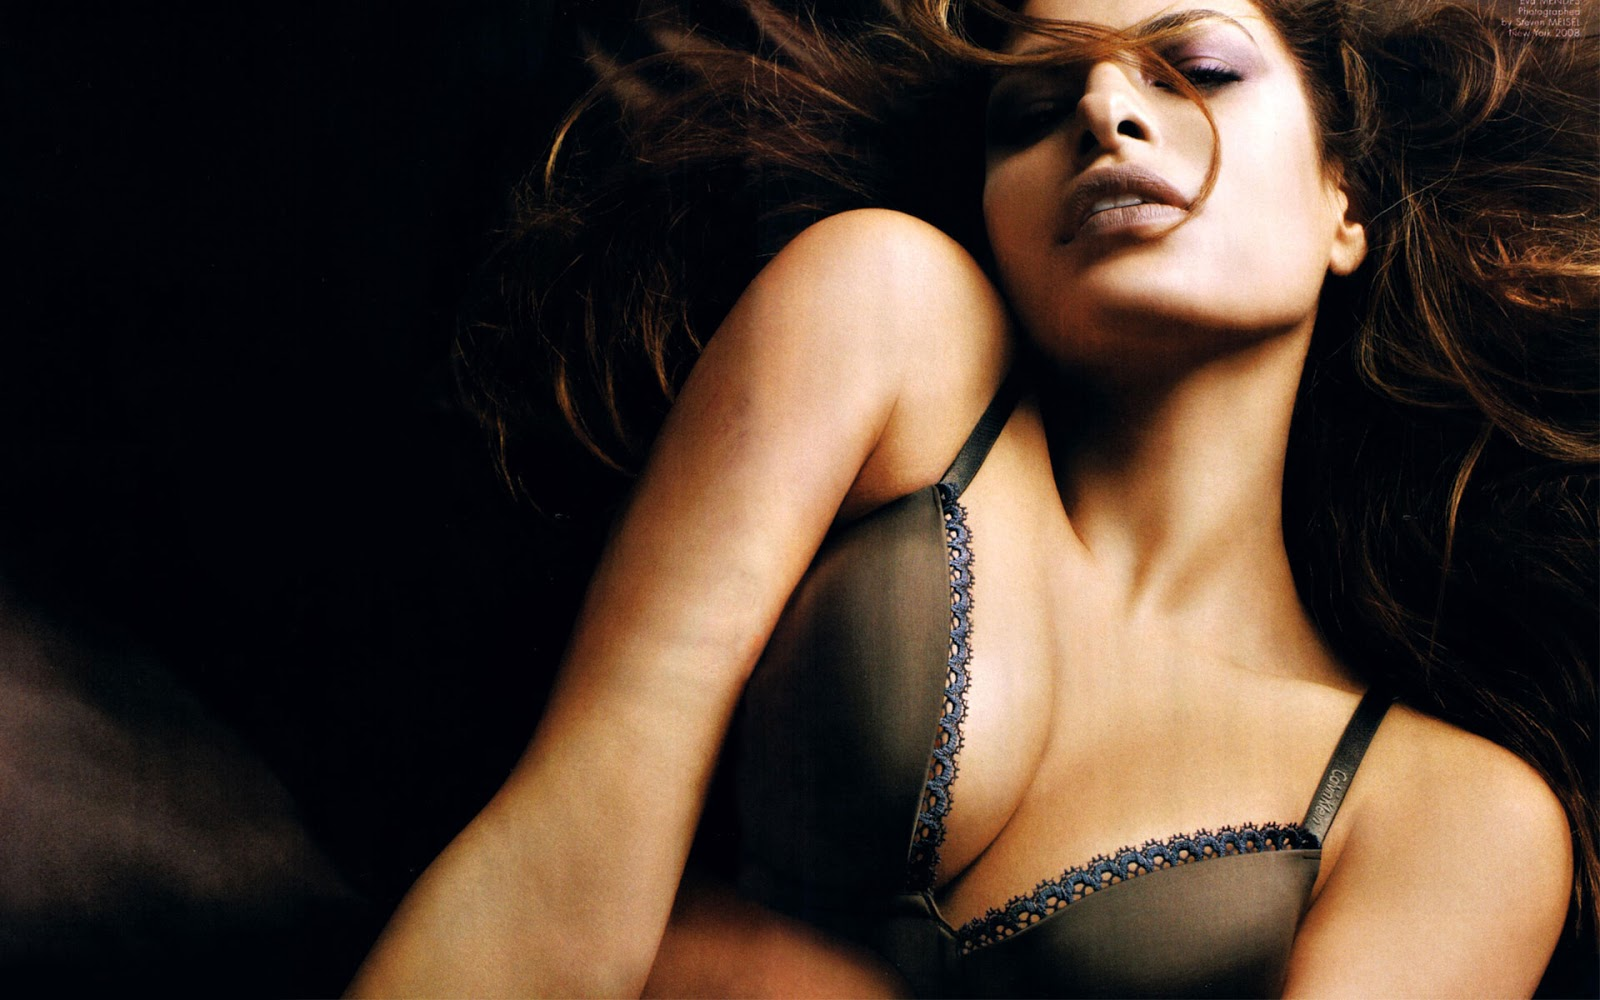 Topless Eva Mendes Wallpaper Nude Pictures